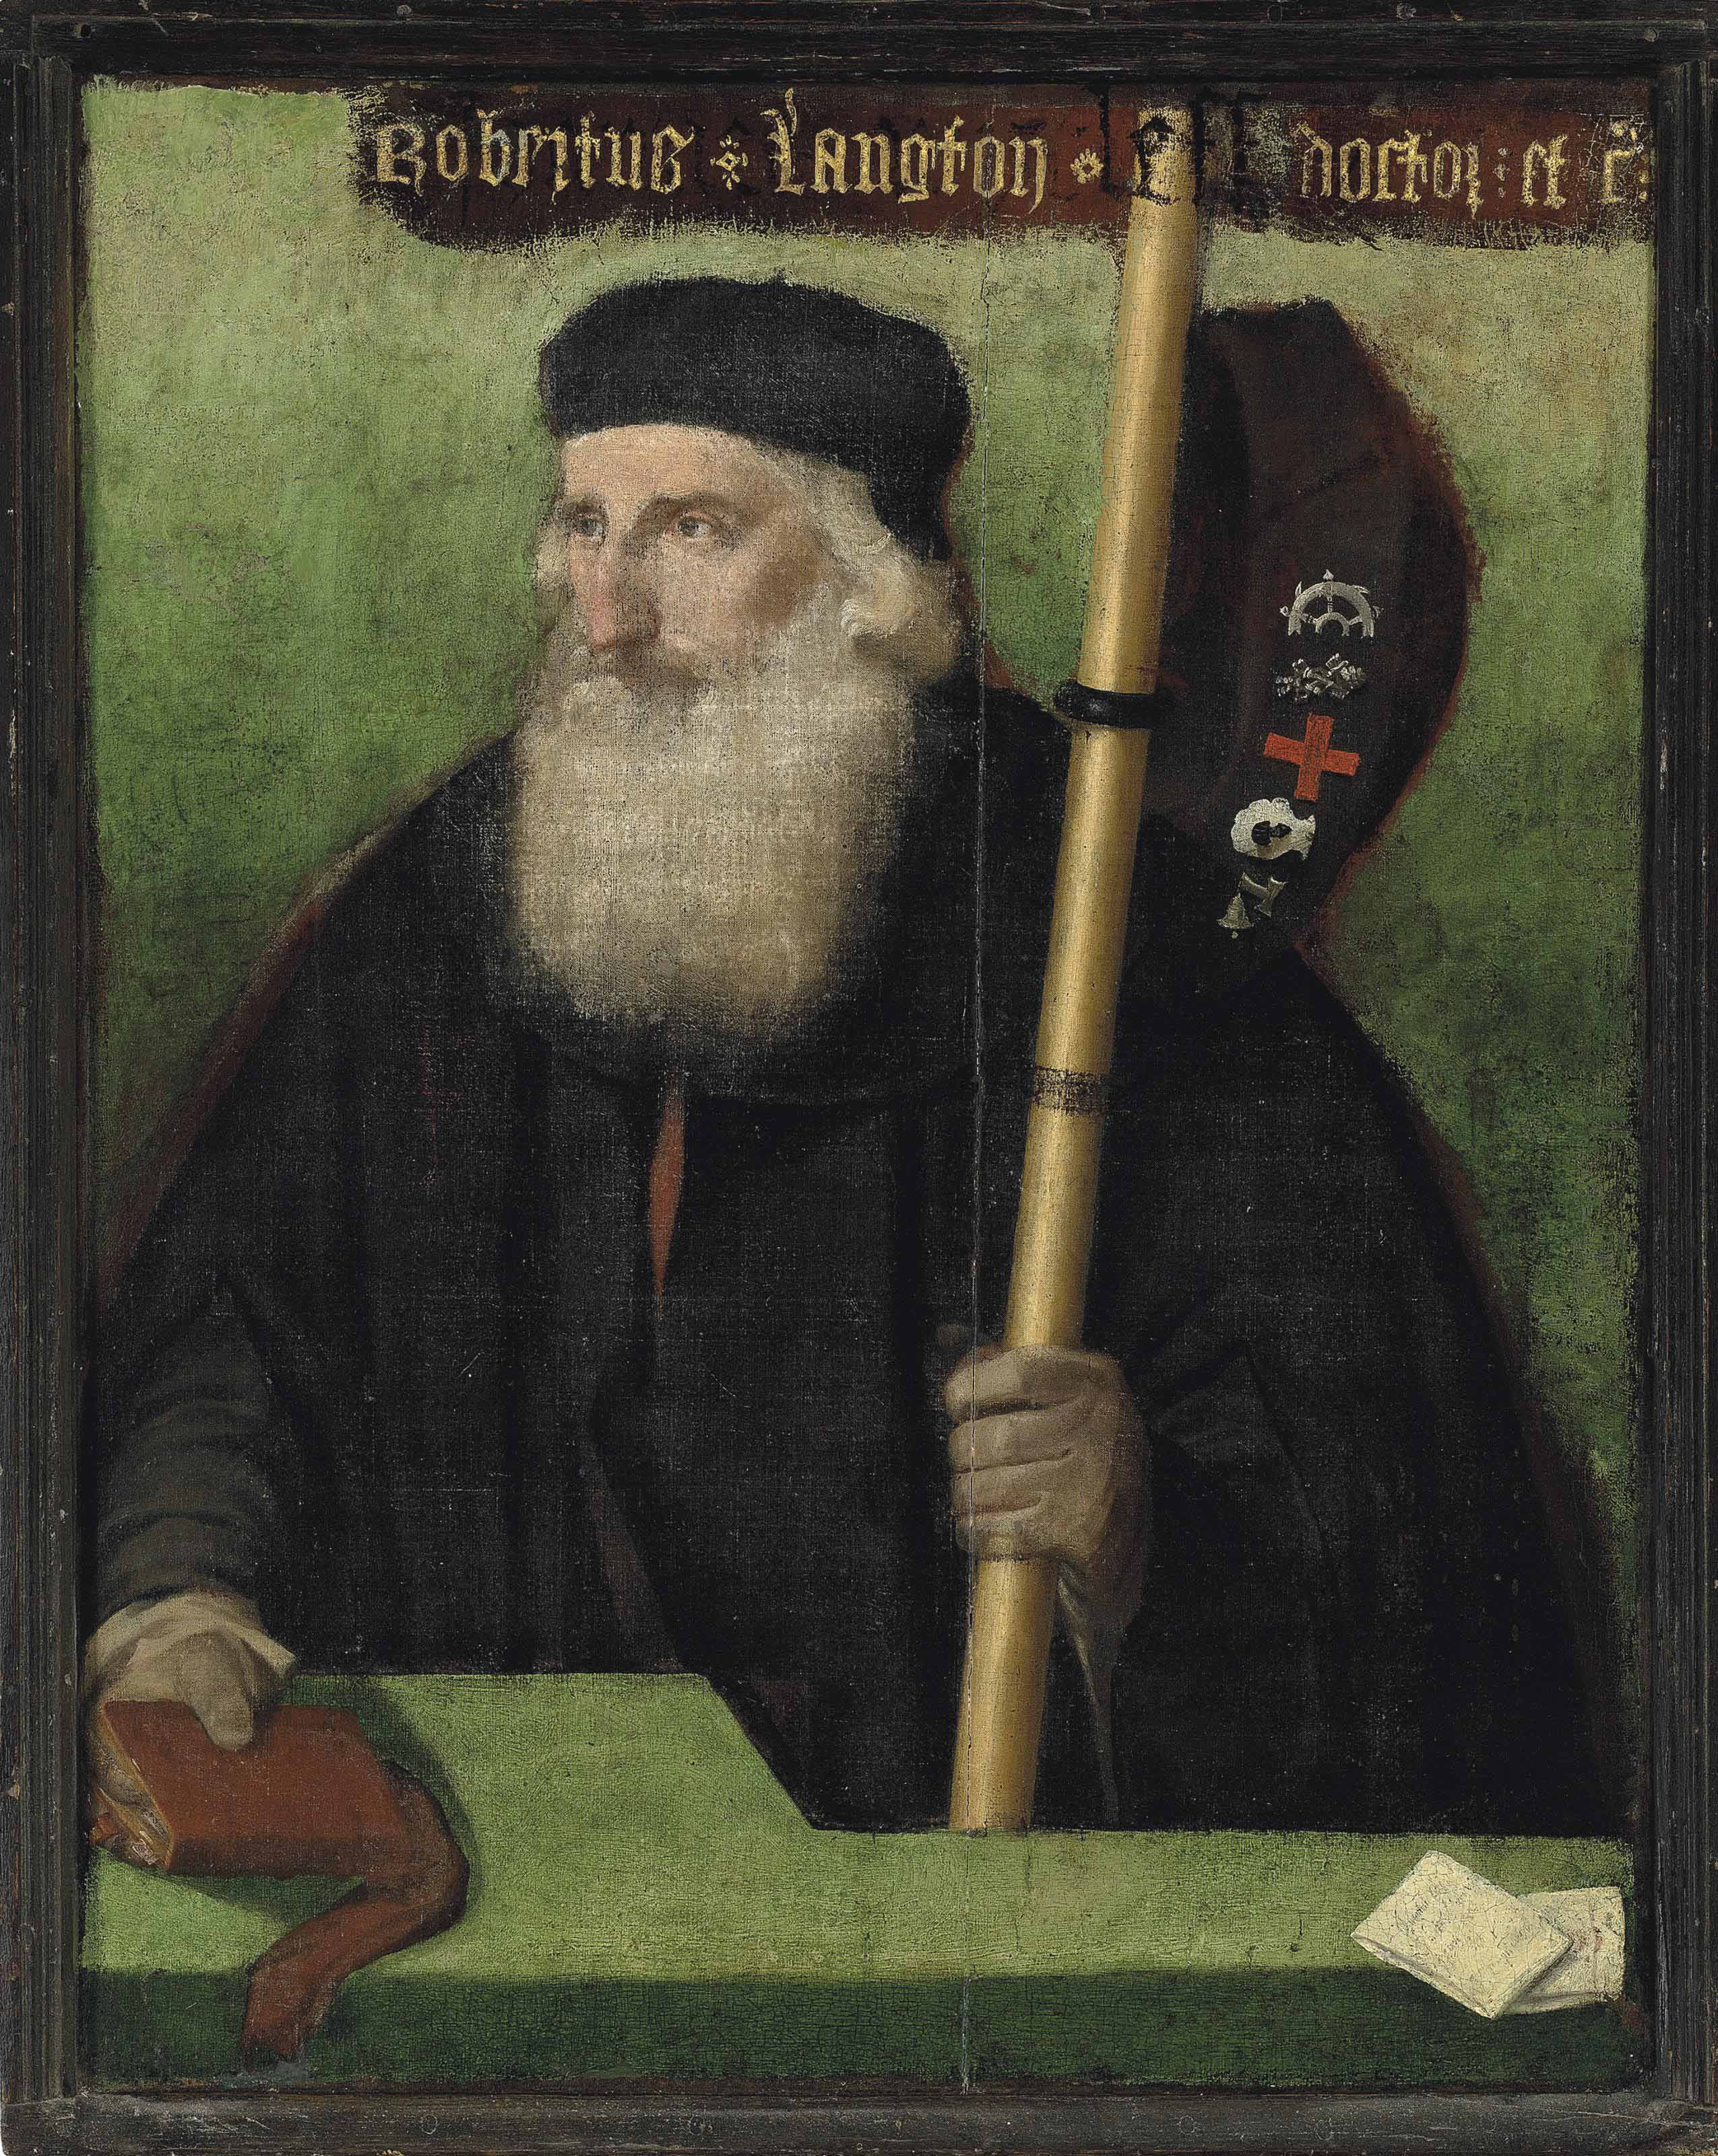 Portrait of Robert Langton (1470-1524), half-length, in black robes and cap, holding a pilgrim staff in his left hand, from which is suspended a pilgrim hat with badges, and a book in his right, behind a parapet